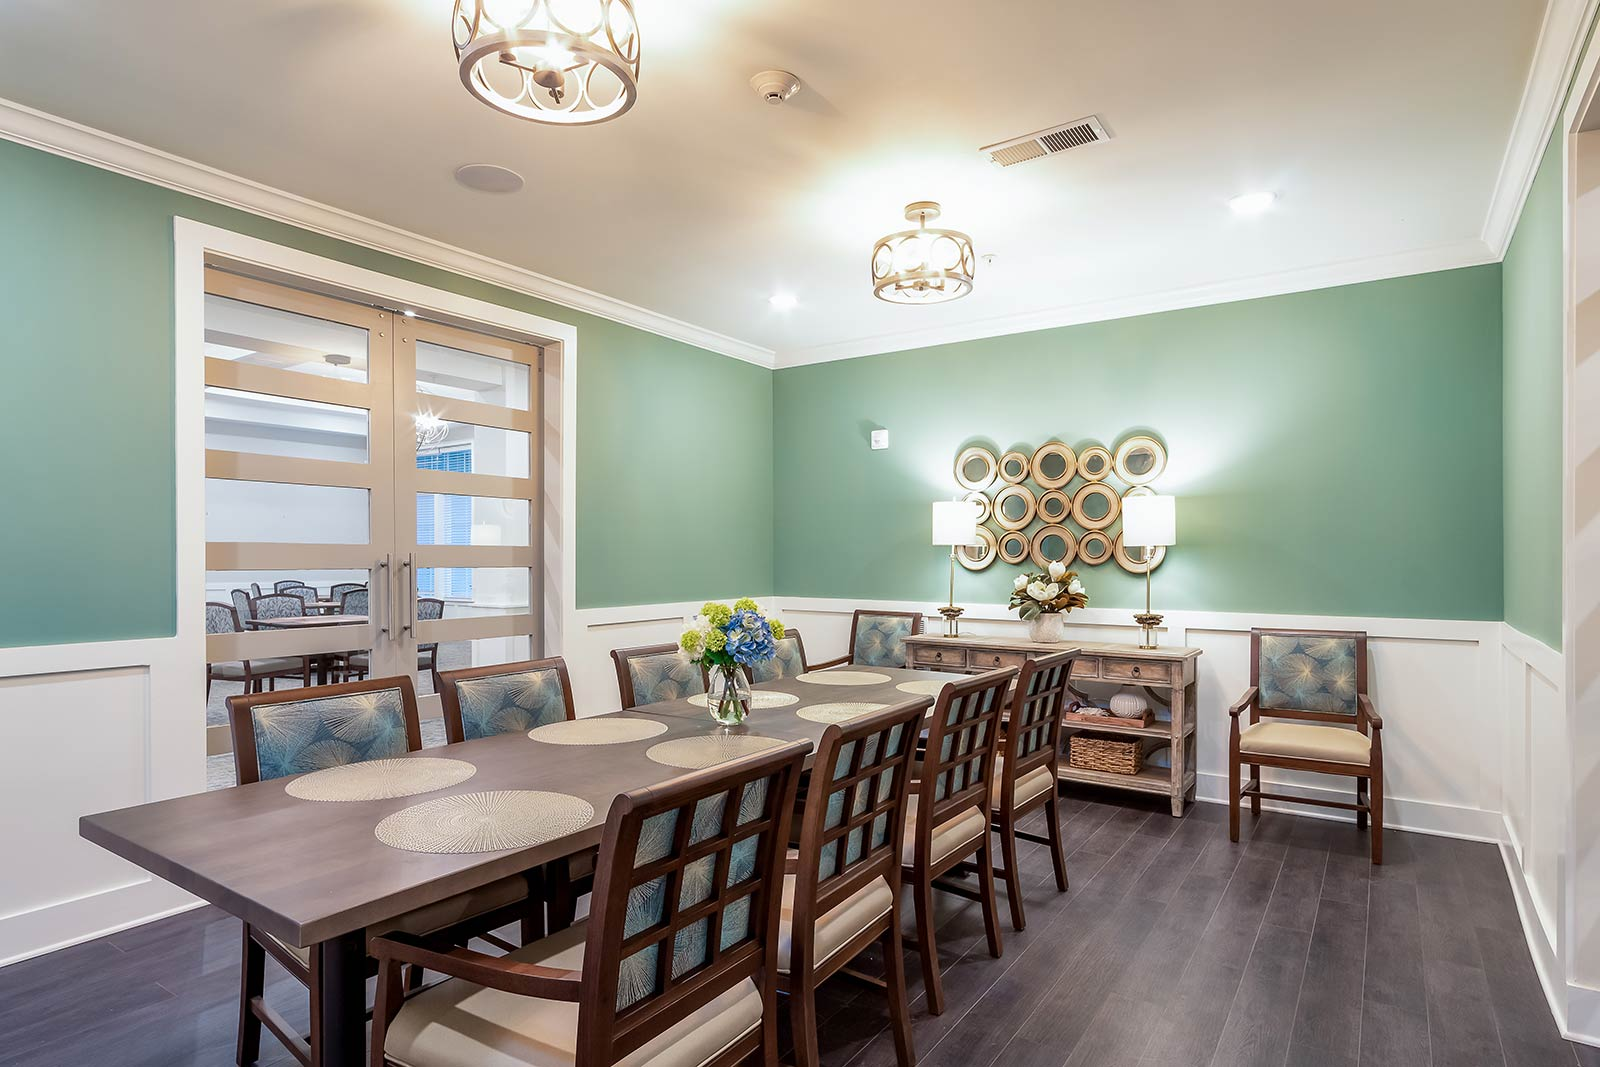 Private dining room for special occasions in our Plant City FL assisted living and memory care community